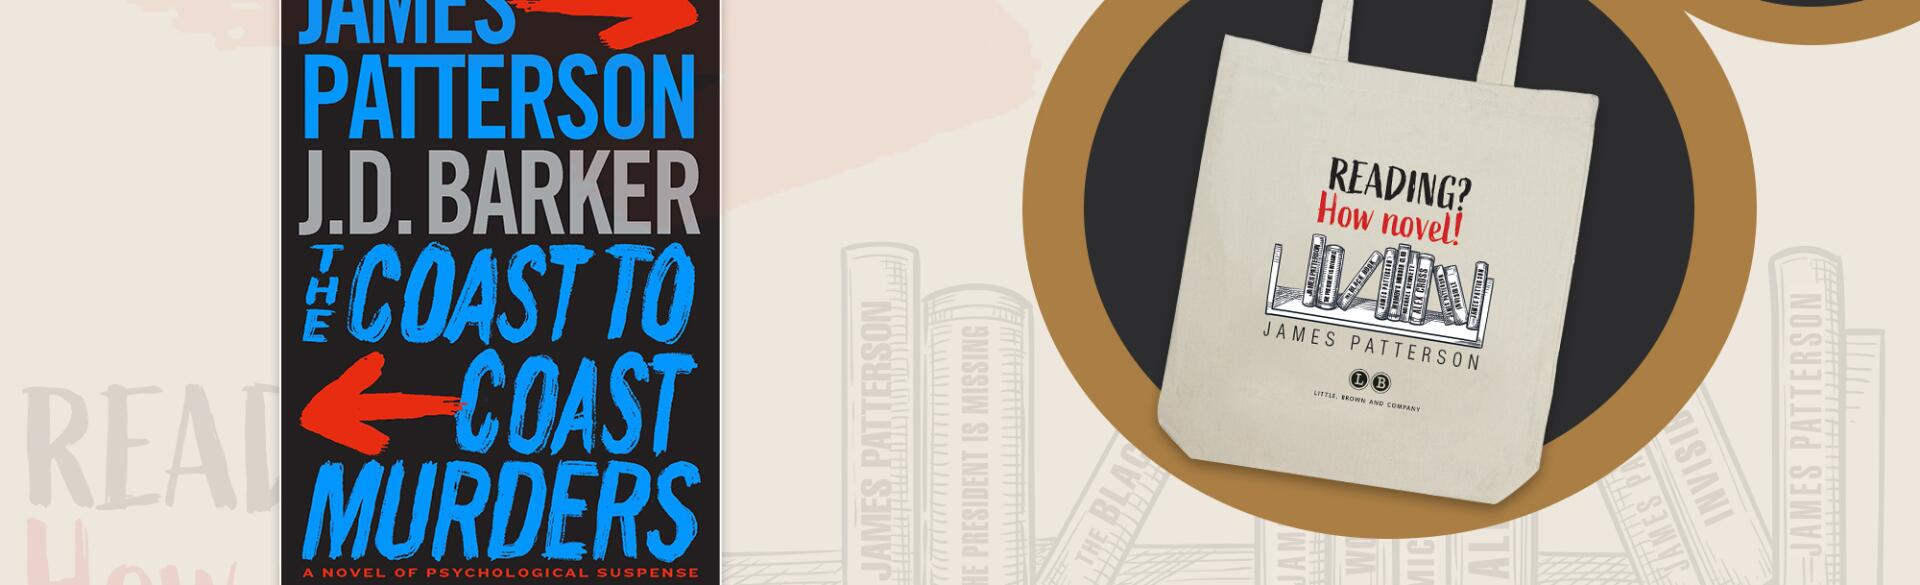 The Coast-to-Coast Murders by James Patterson Giveaway Image